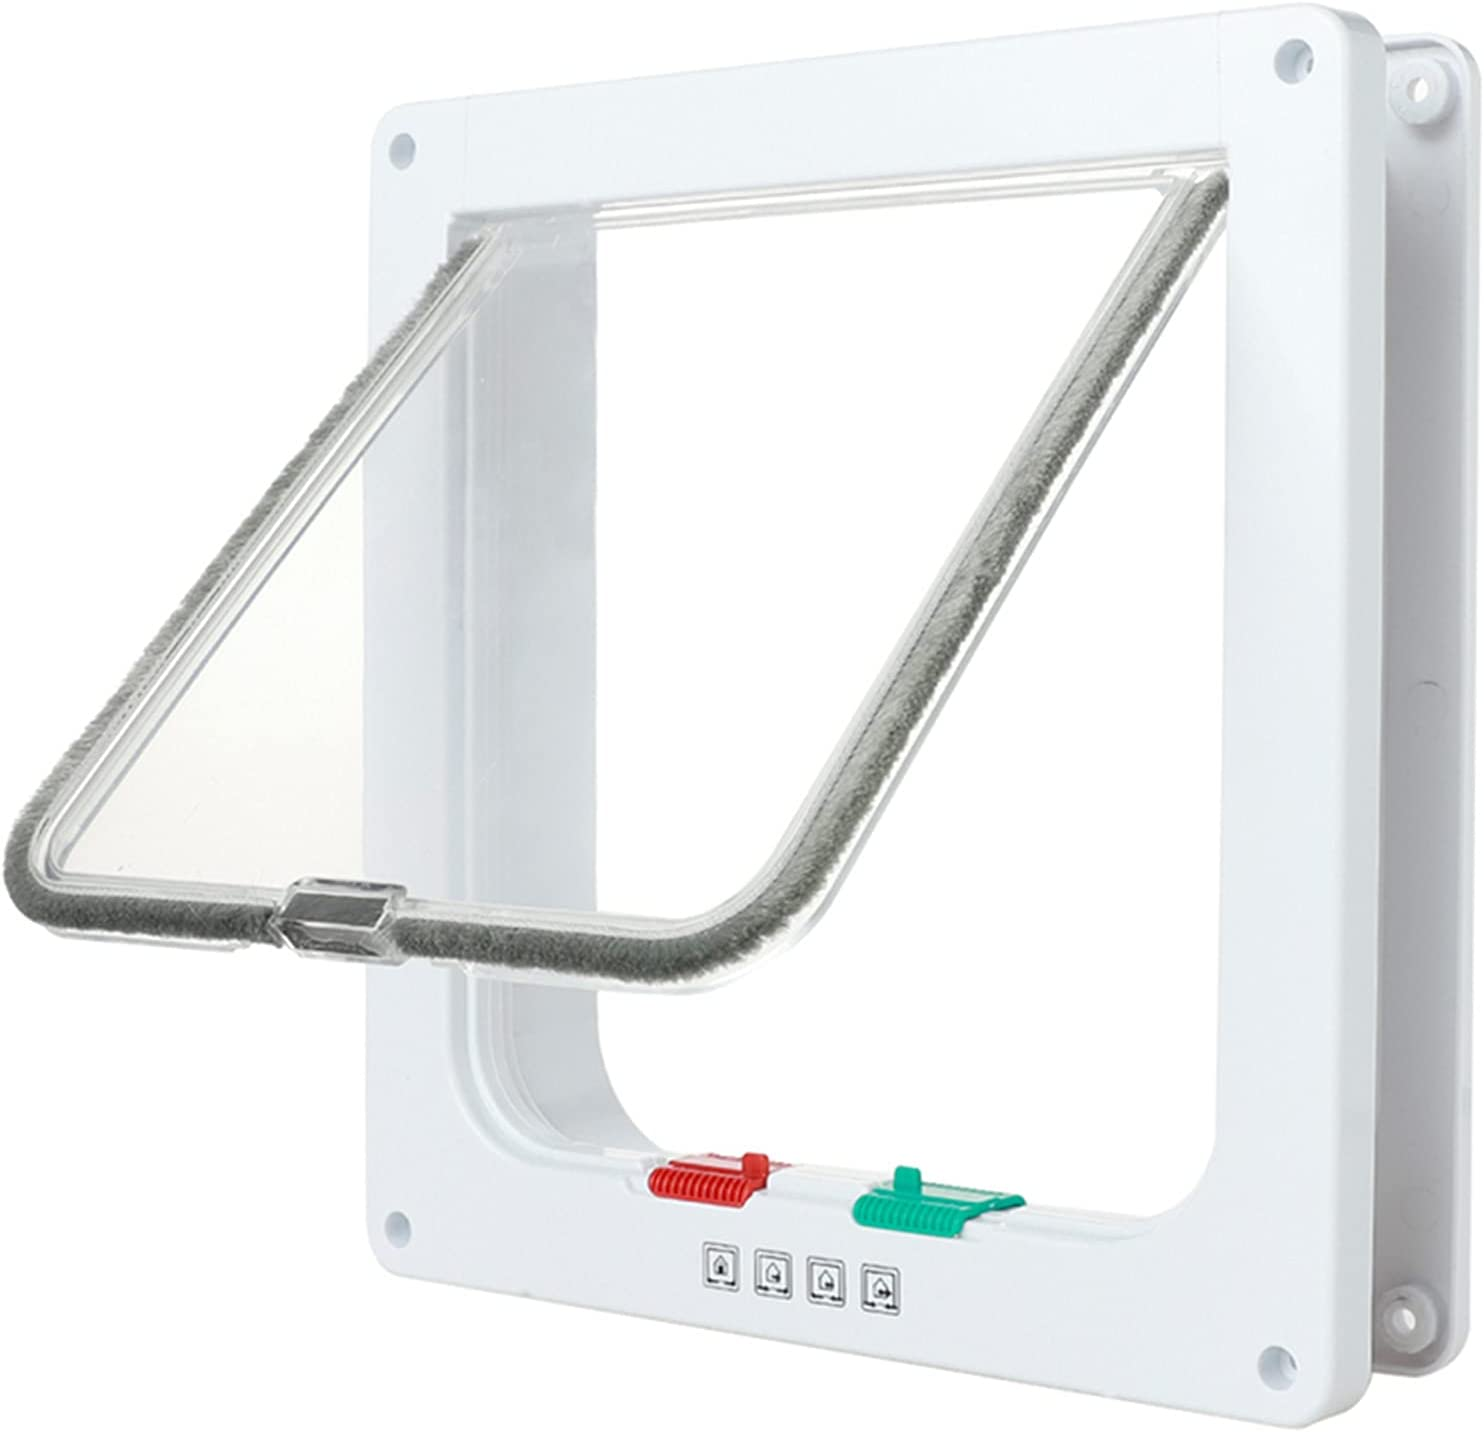 Yabuy Manufacturer OFFicial shop Dog and Cat Flap 1 year warranty Door Way Inte Locking 4 for